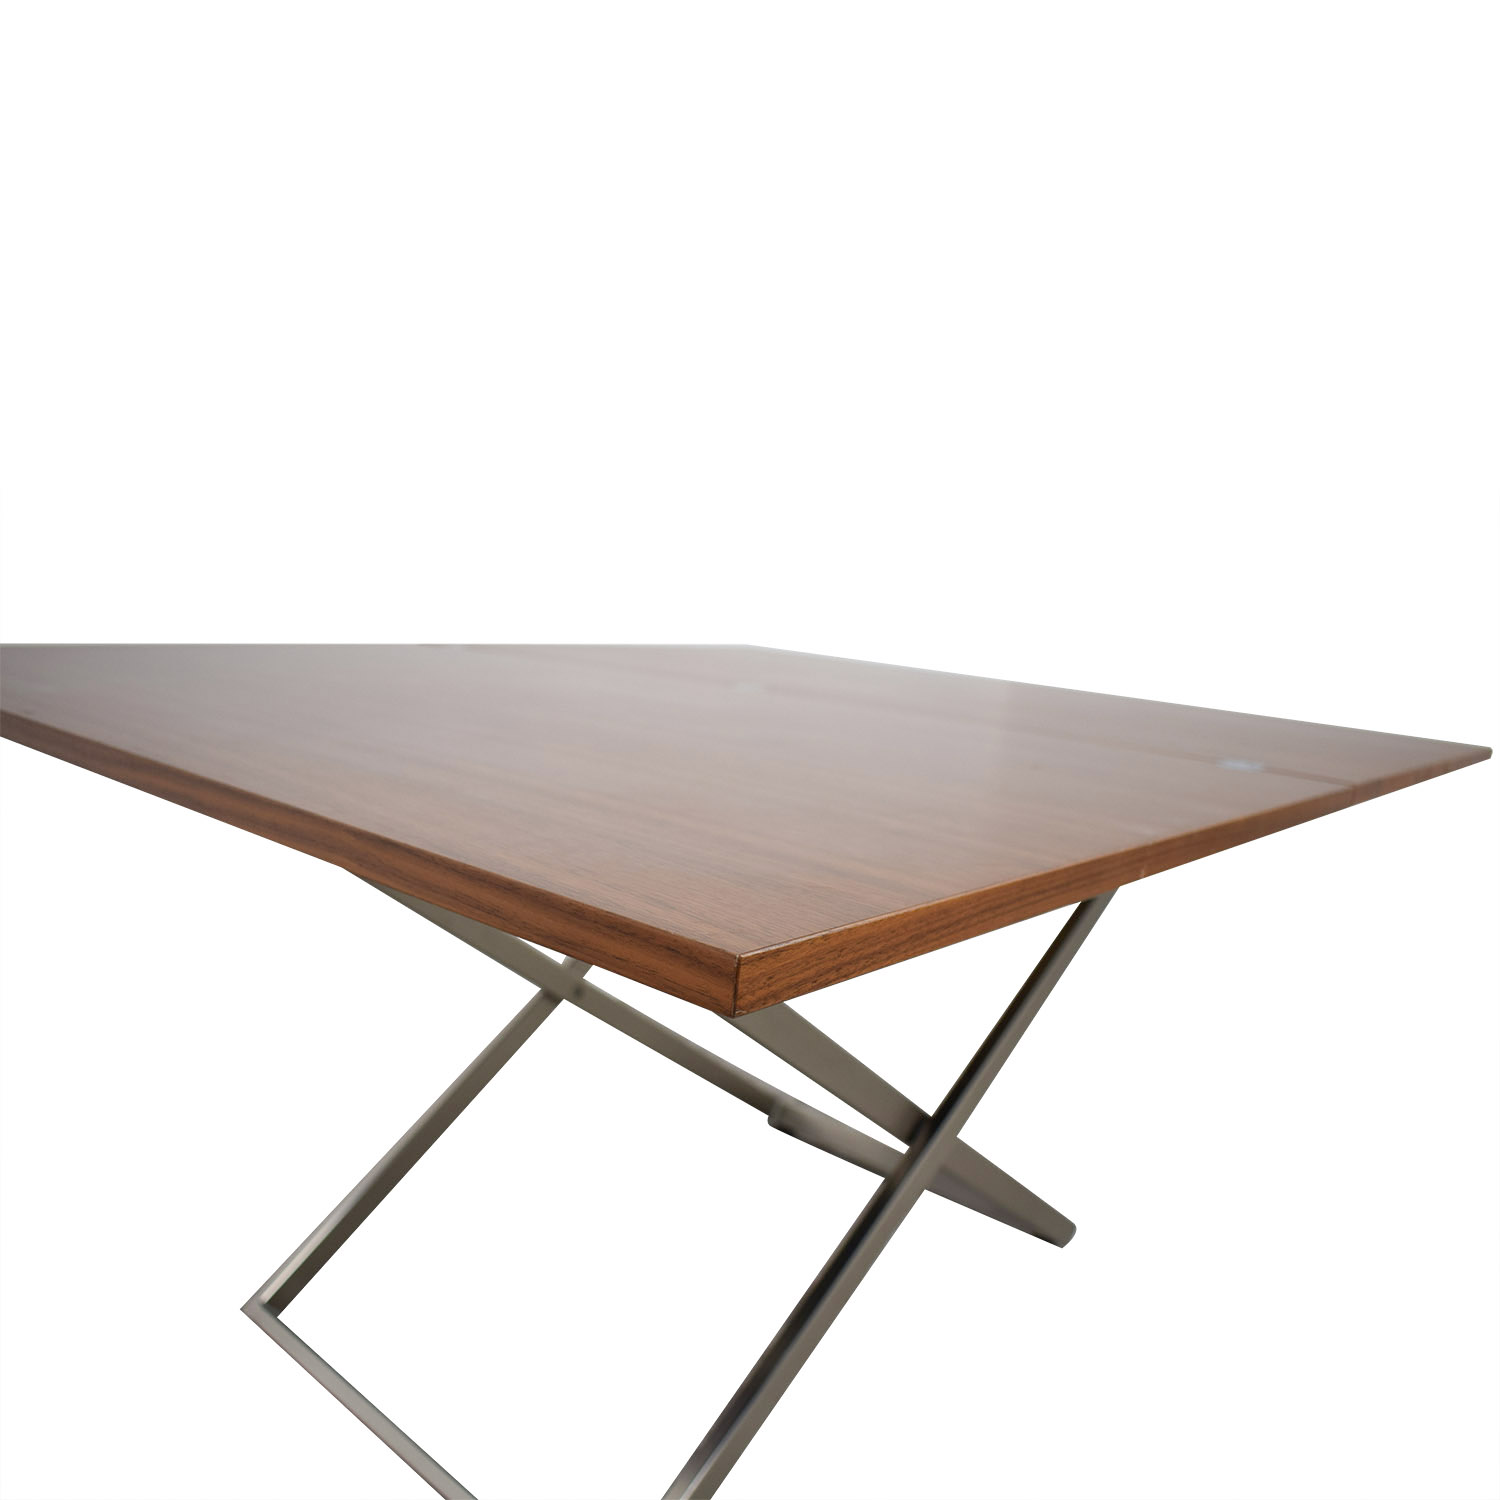 Bo Concept Bo Concept Rubi Adjustable Table from Coffee to Dining BROWN/SILVER BASE